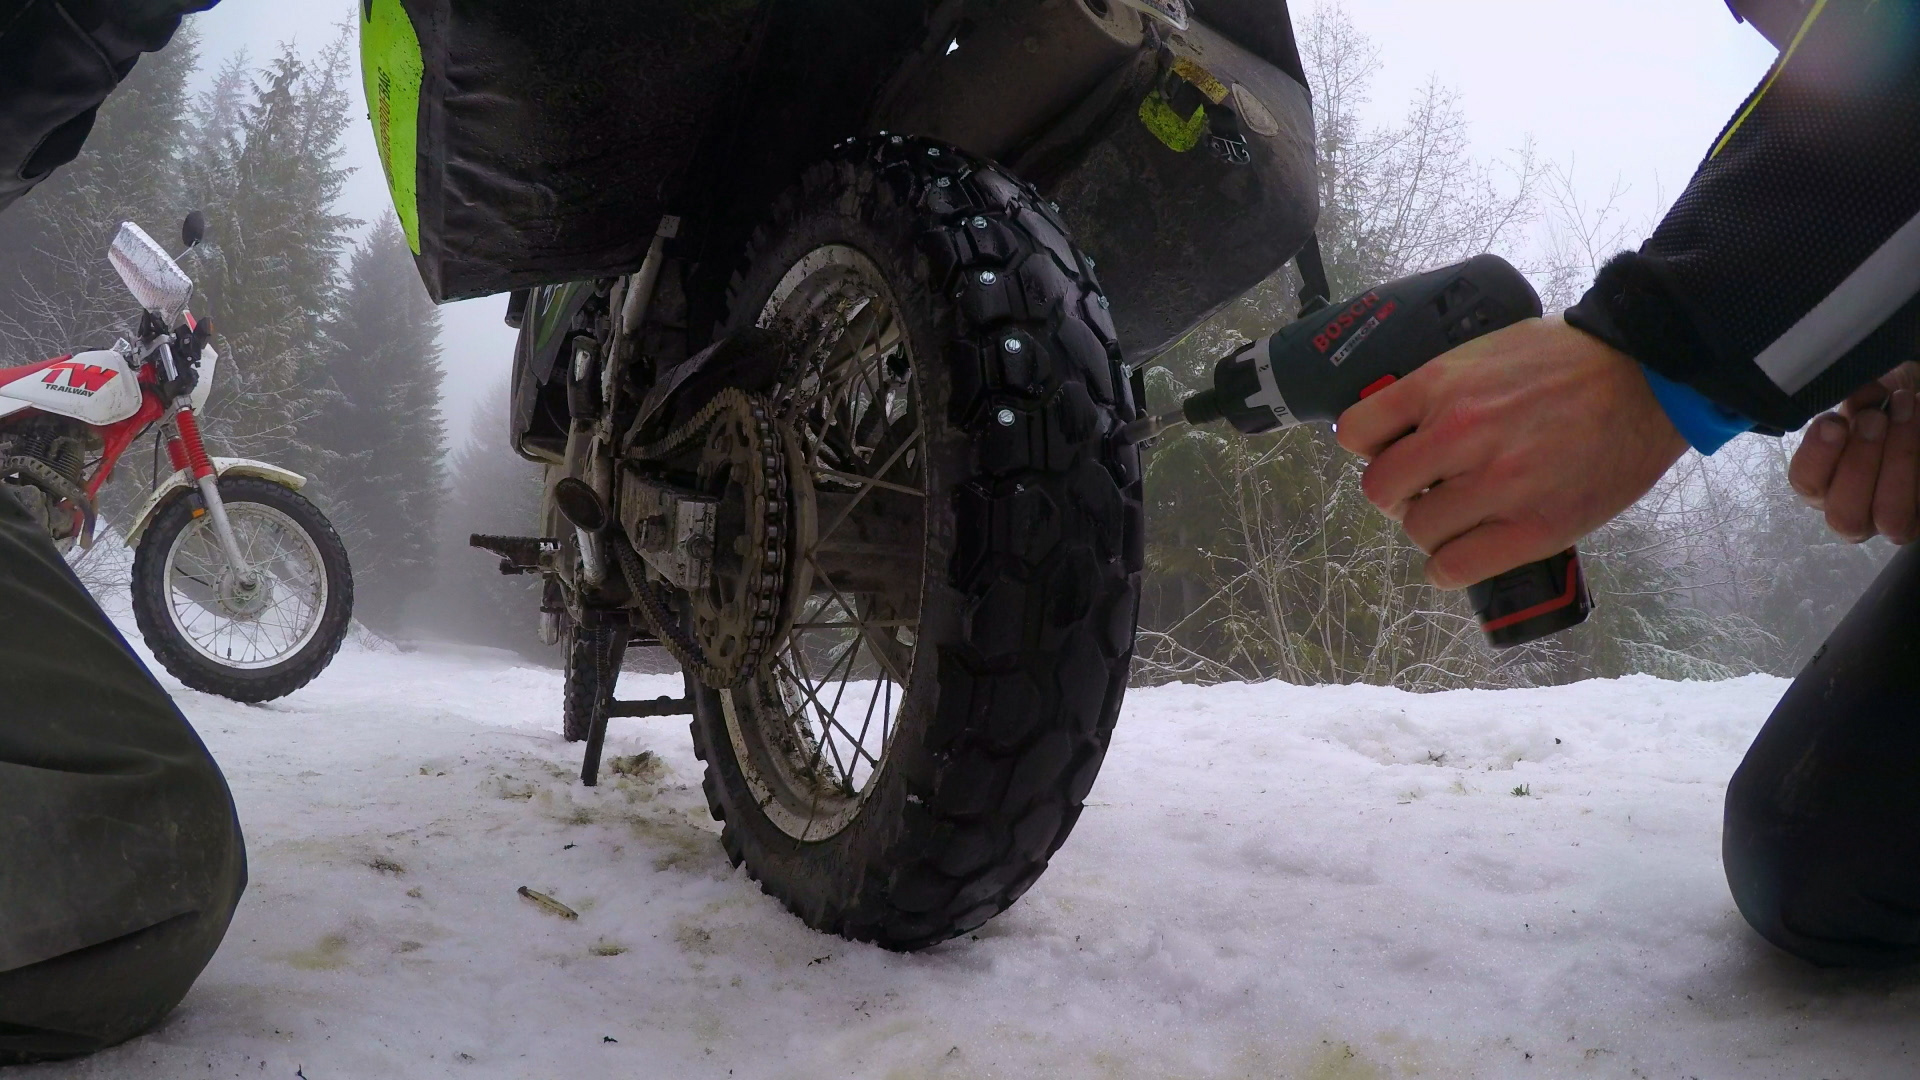 Conquering winter on Craigslist dual-sports: The ride to